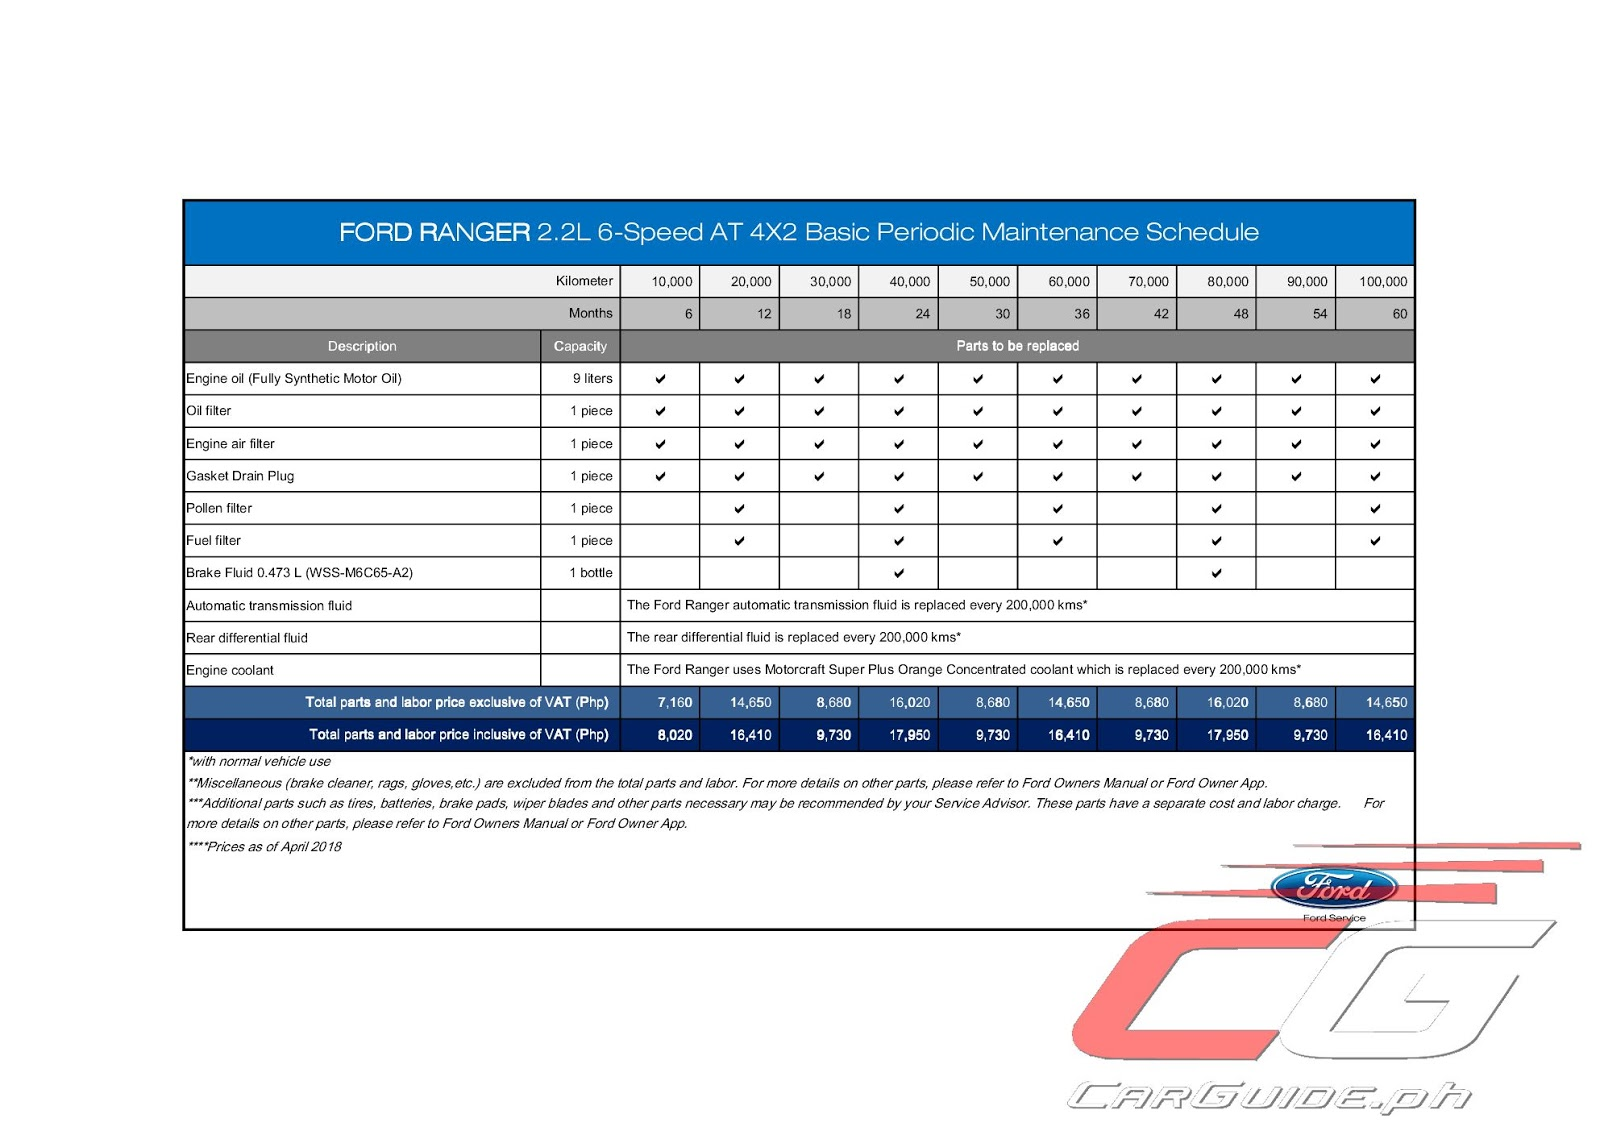 Ford Ranger PMS Costing: